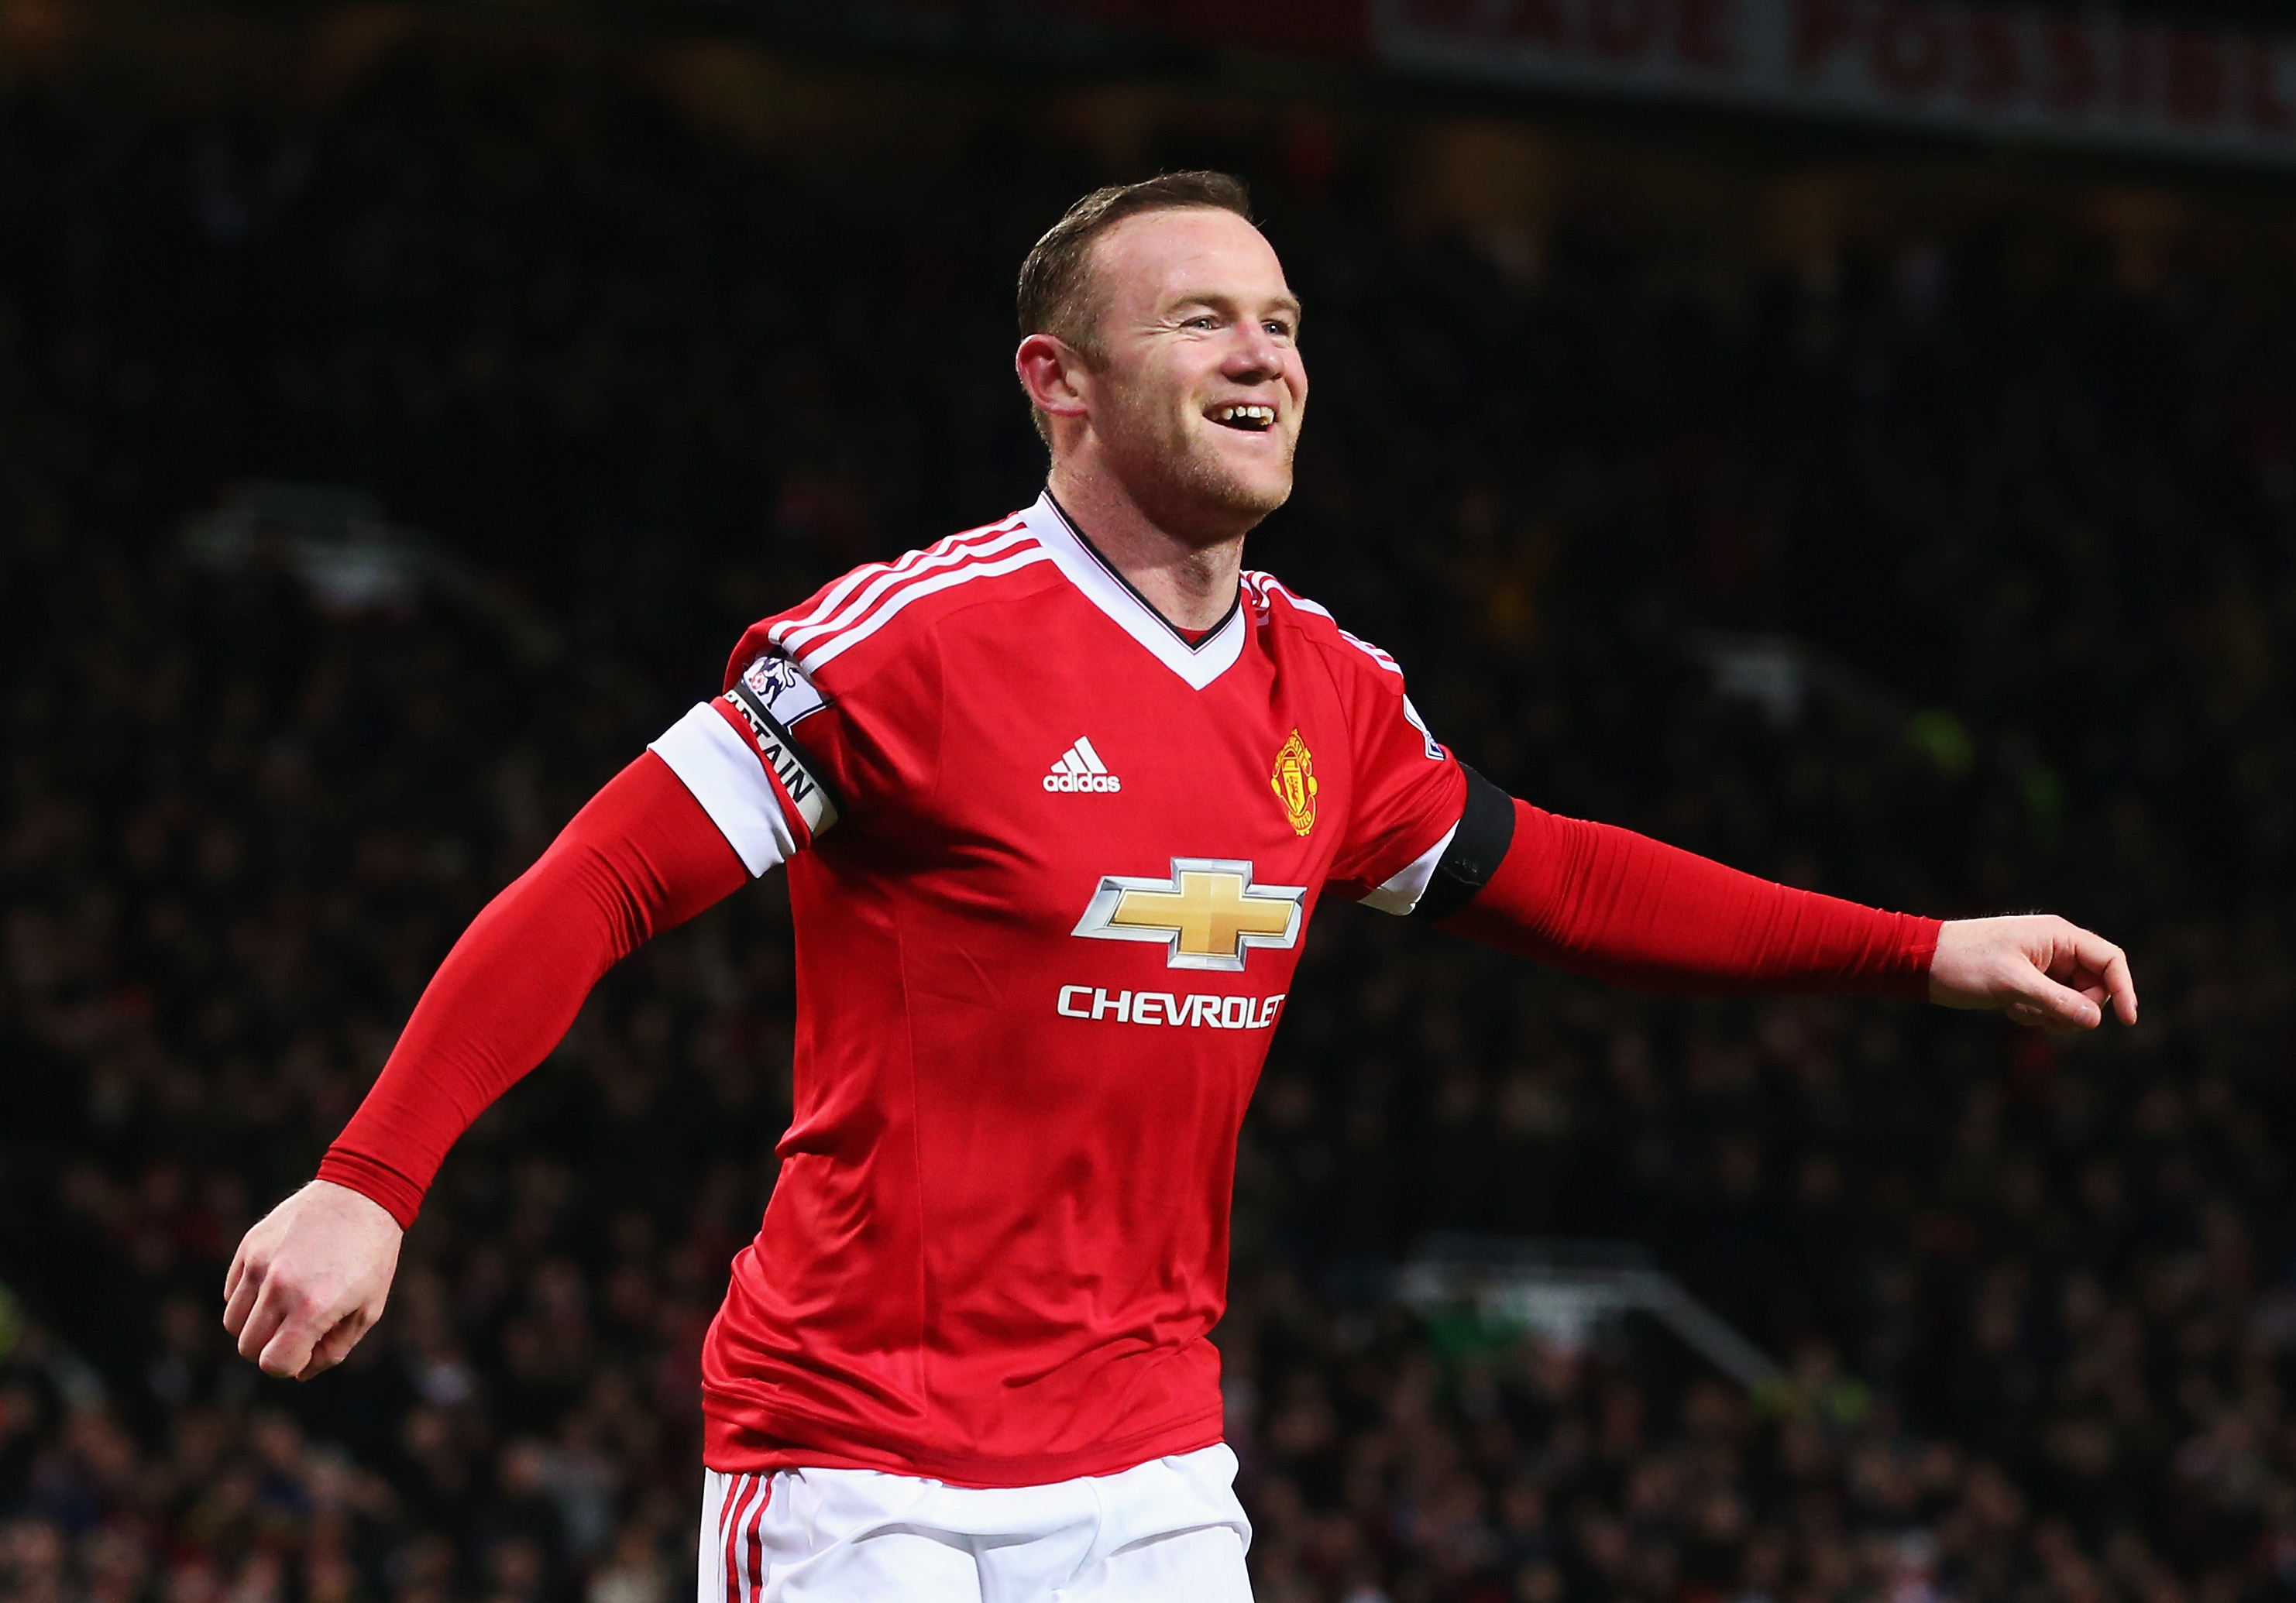 MANCHESTER, ENGLAND - FEBRUARY 02: Wayne Rooney of Manchester United celebrates scoring his team's third goal during the Barclays Premier League match between Manchester United and Stoke City at Old Trafford on February 2, 2016 in Manchester, England. (Photo by Alex Livesey/Getty Images)